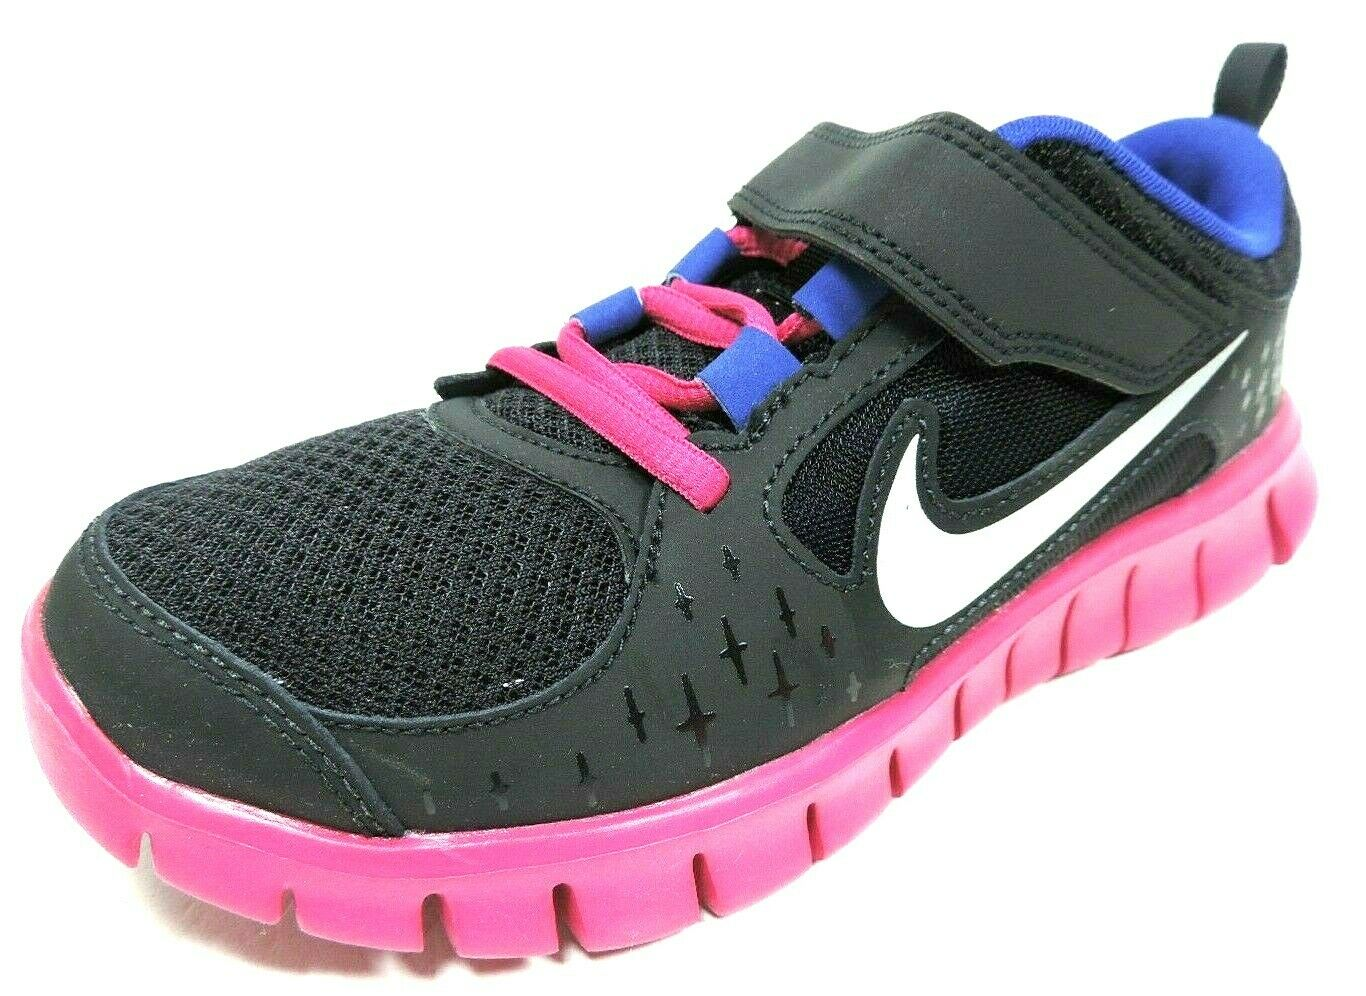 Nike Free Run 3 PSV 512100 004 Little Girls Shoes Running Black Mesh Black Pink